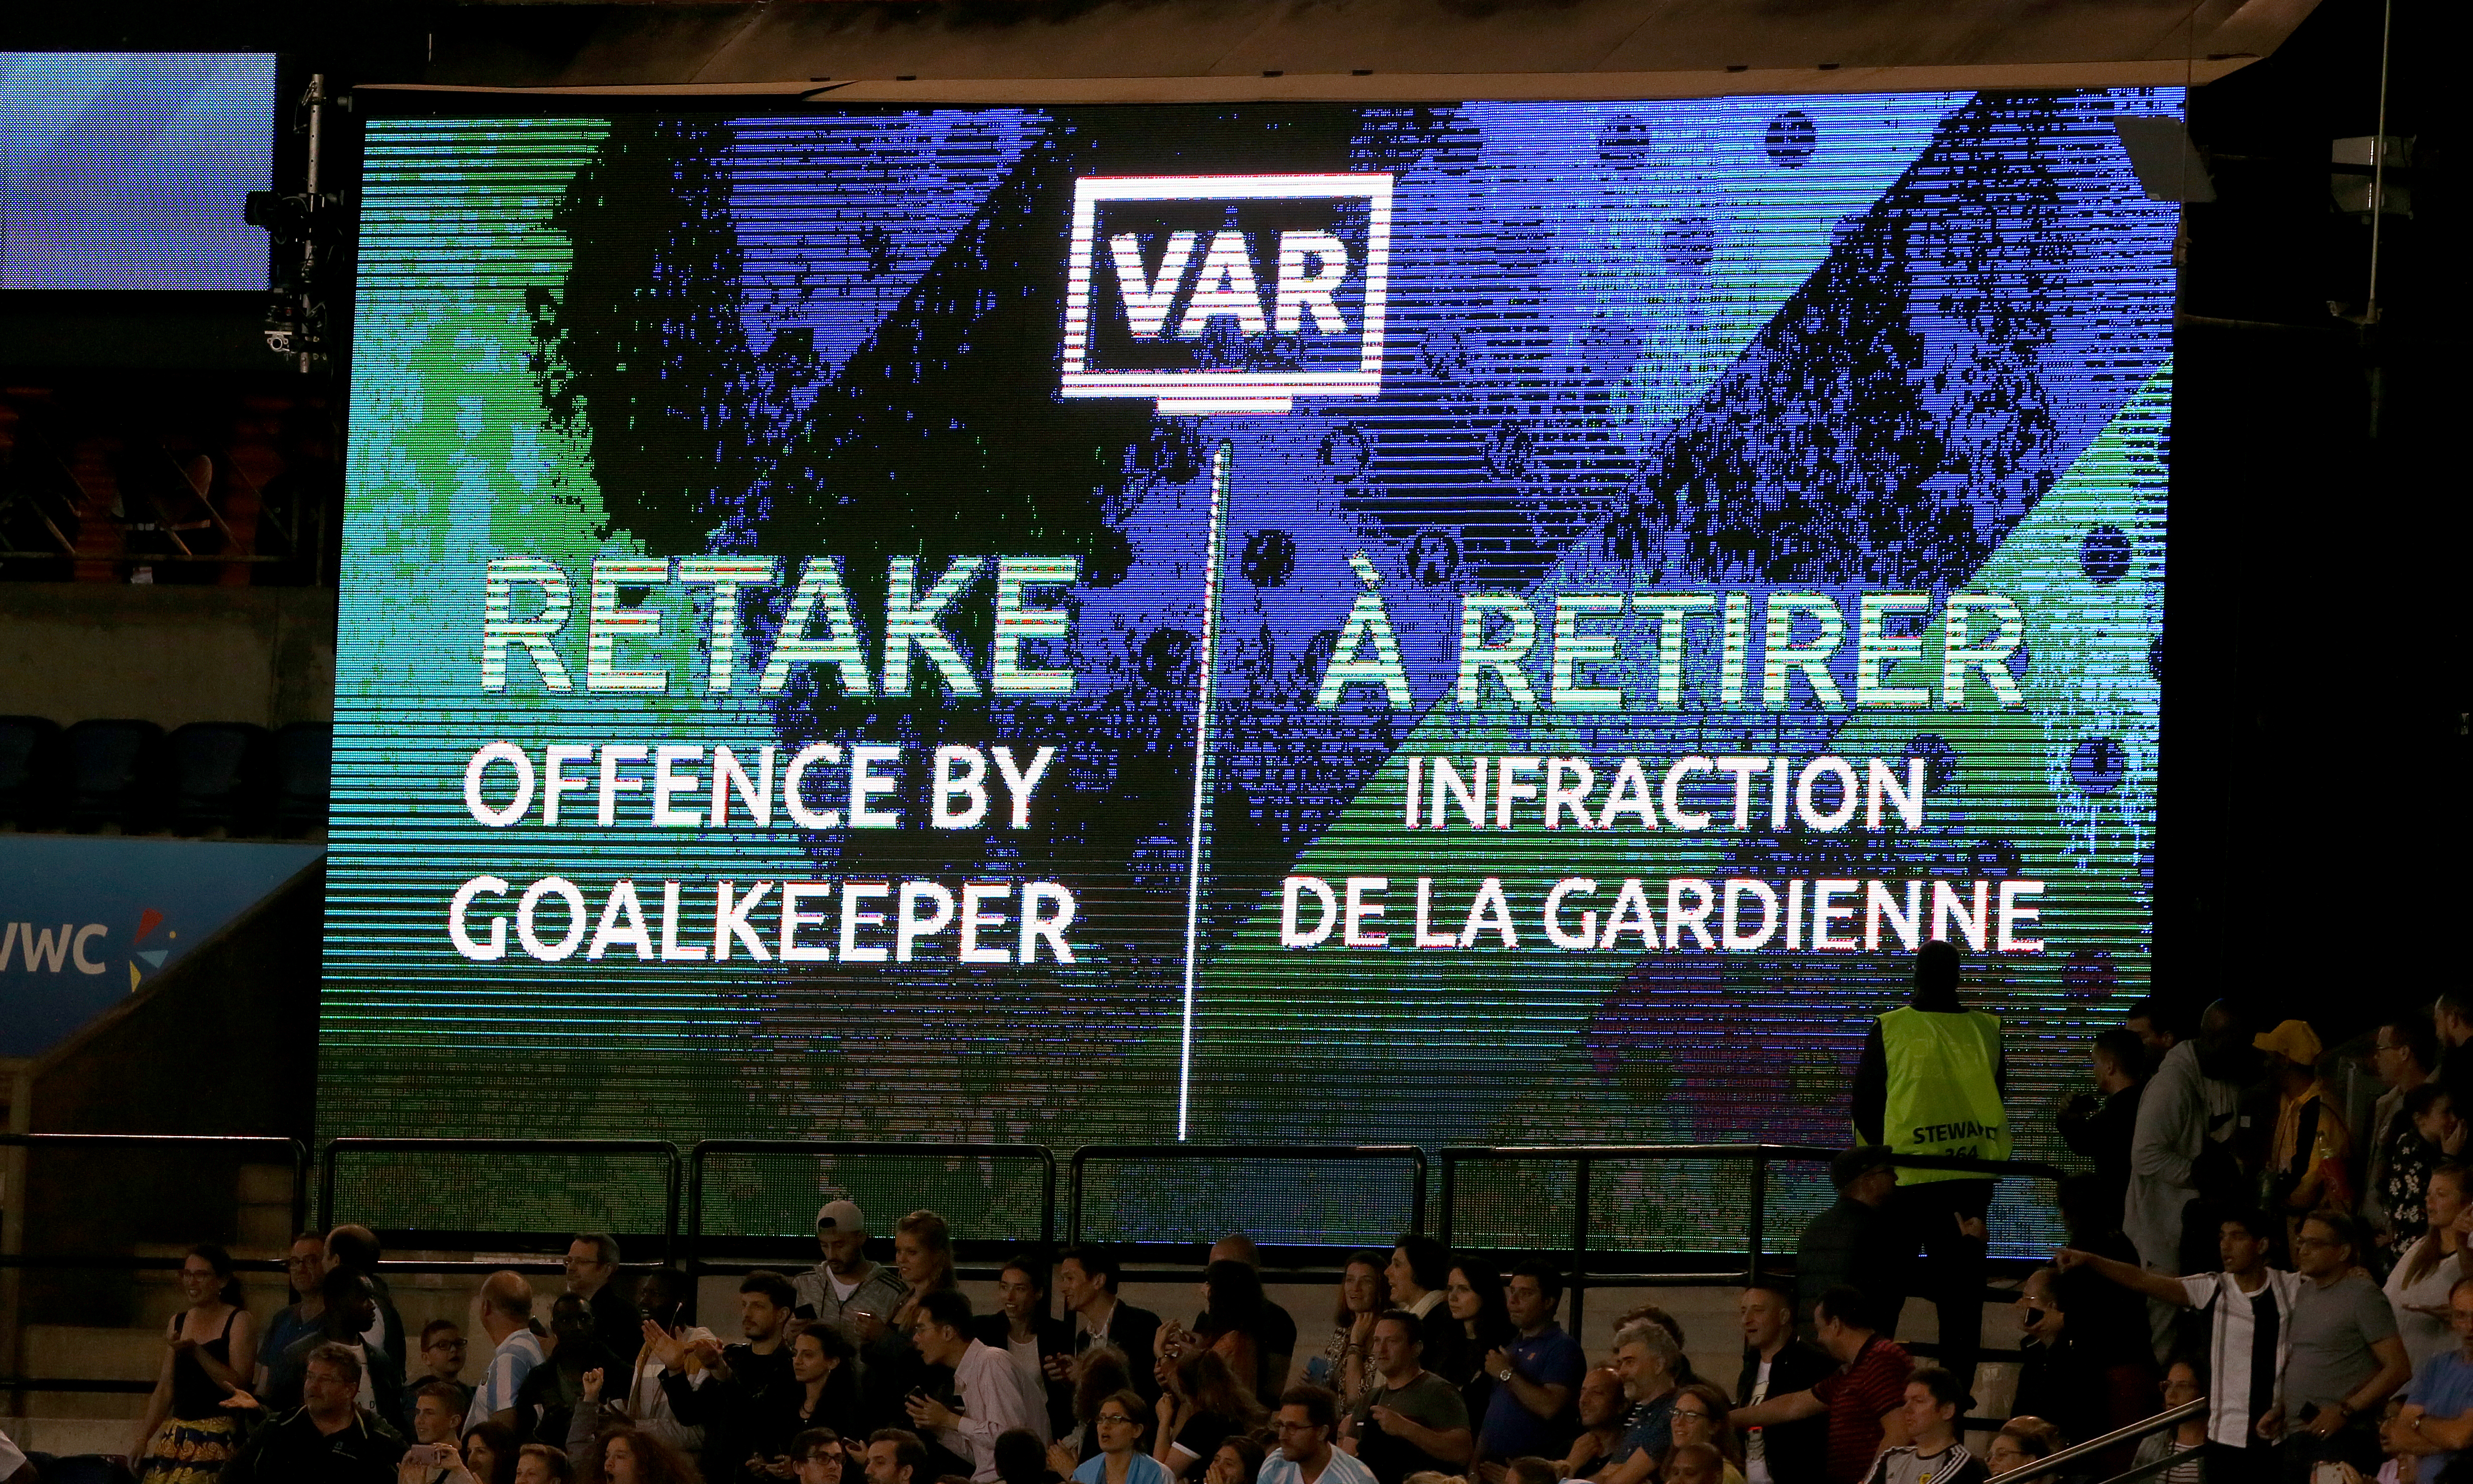 The VAR screen showing that Argentina's penalty was to be retaken